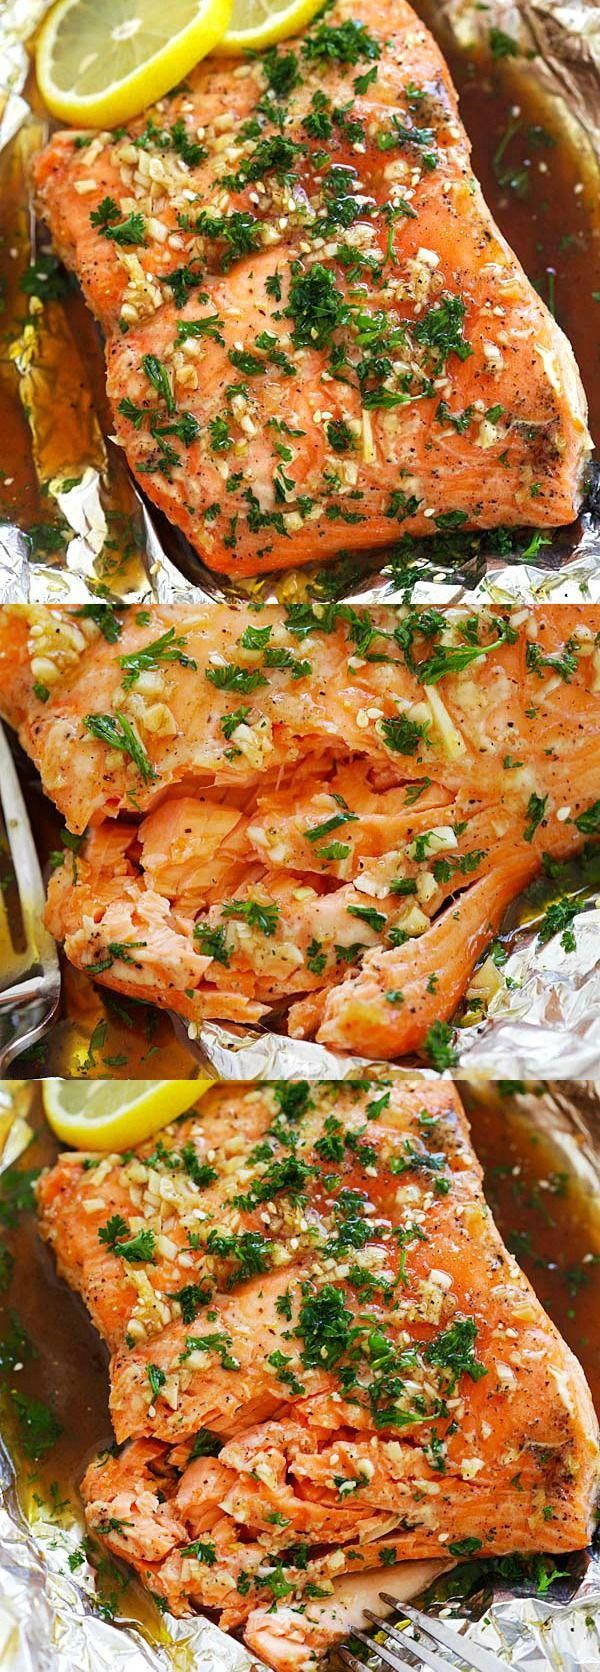 Soy Honey Butter Salmon – Easy roasted salmon recipe with soy sauce and honey butter. Moist, juicy a...